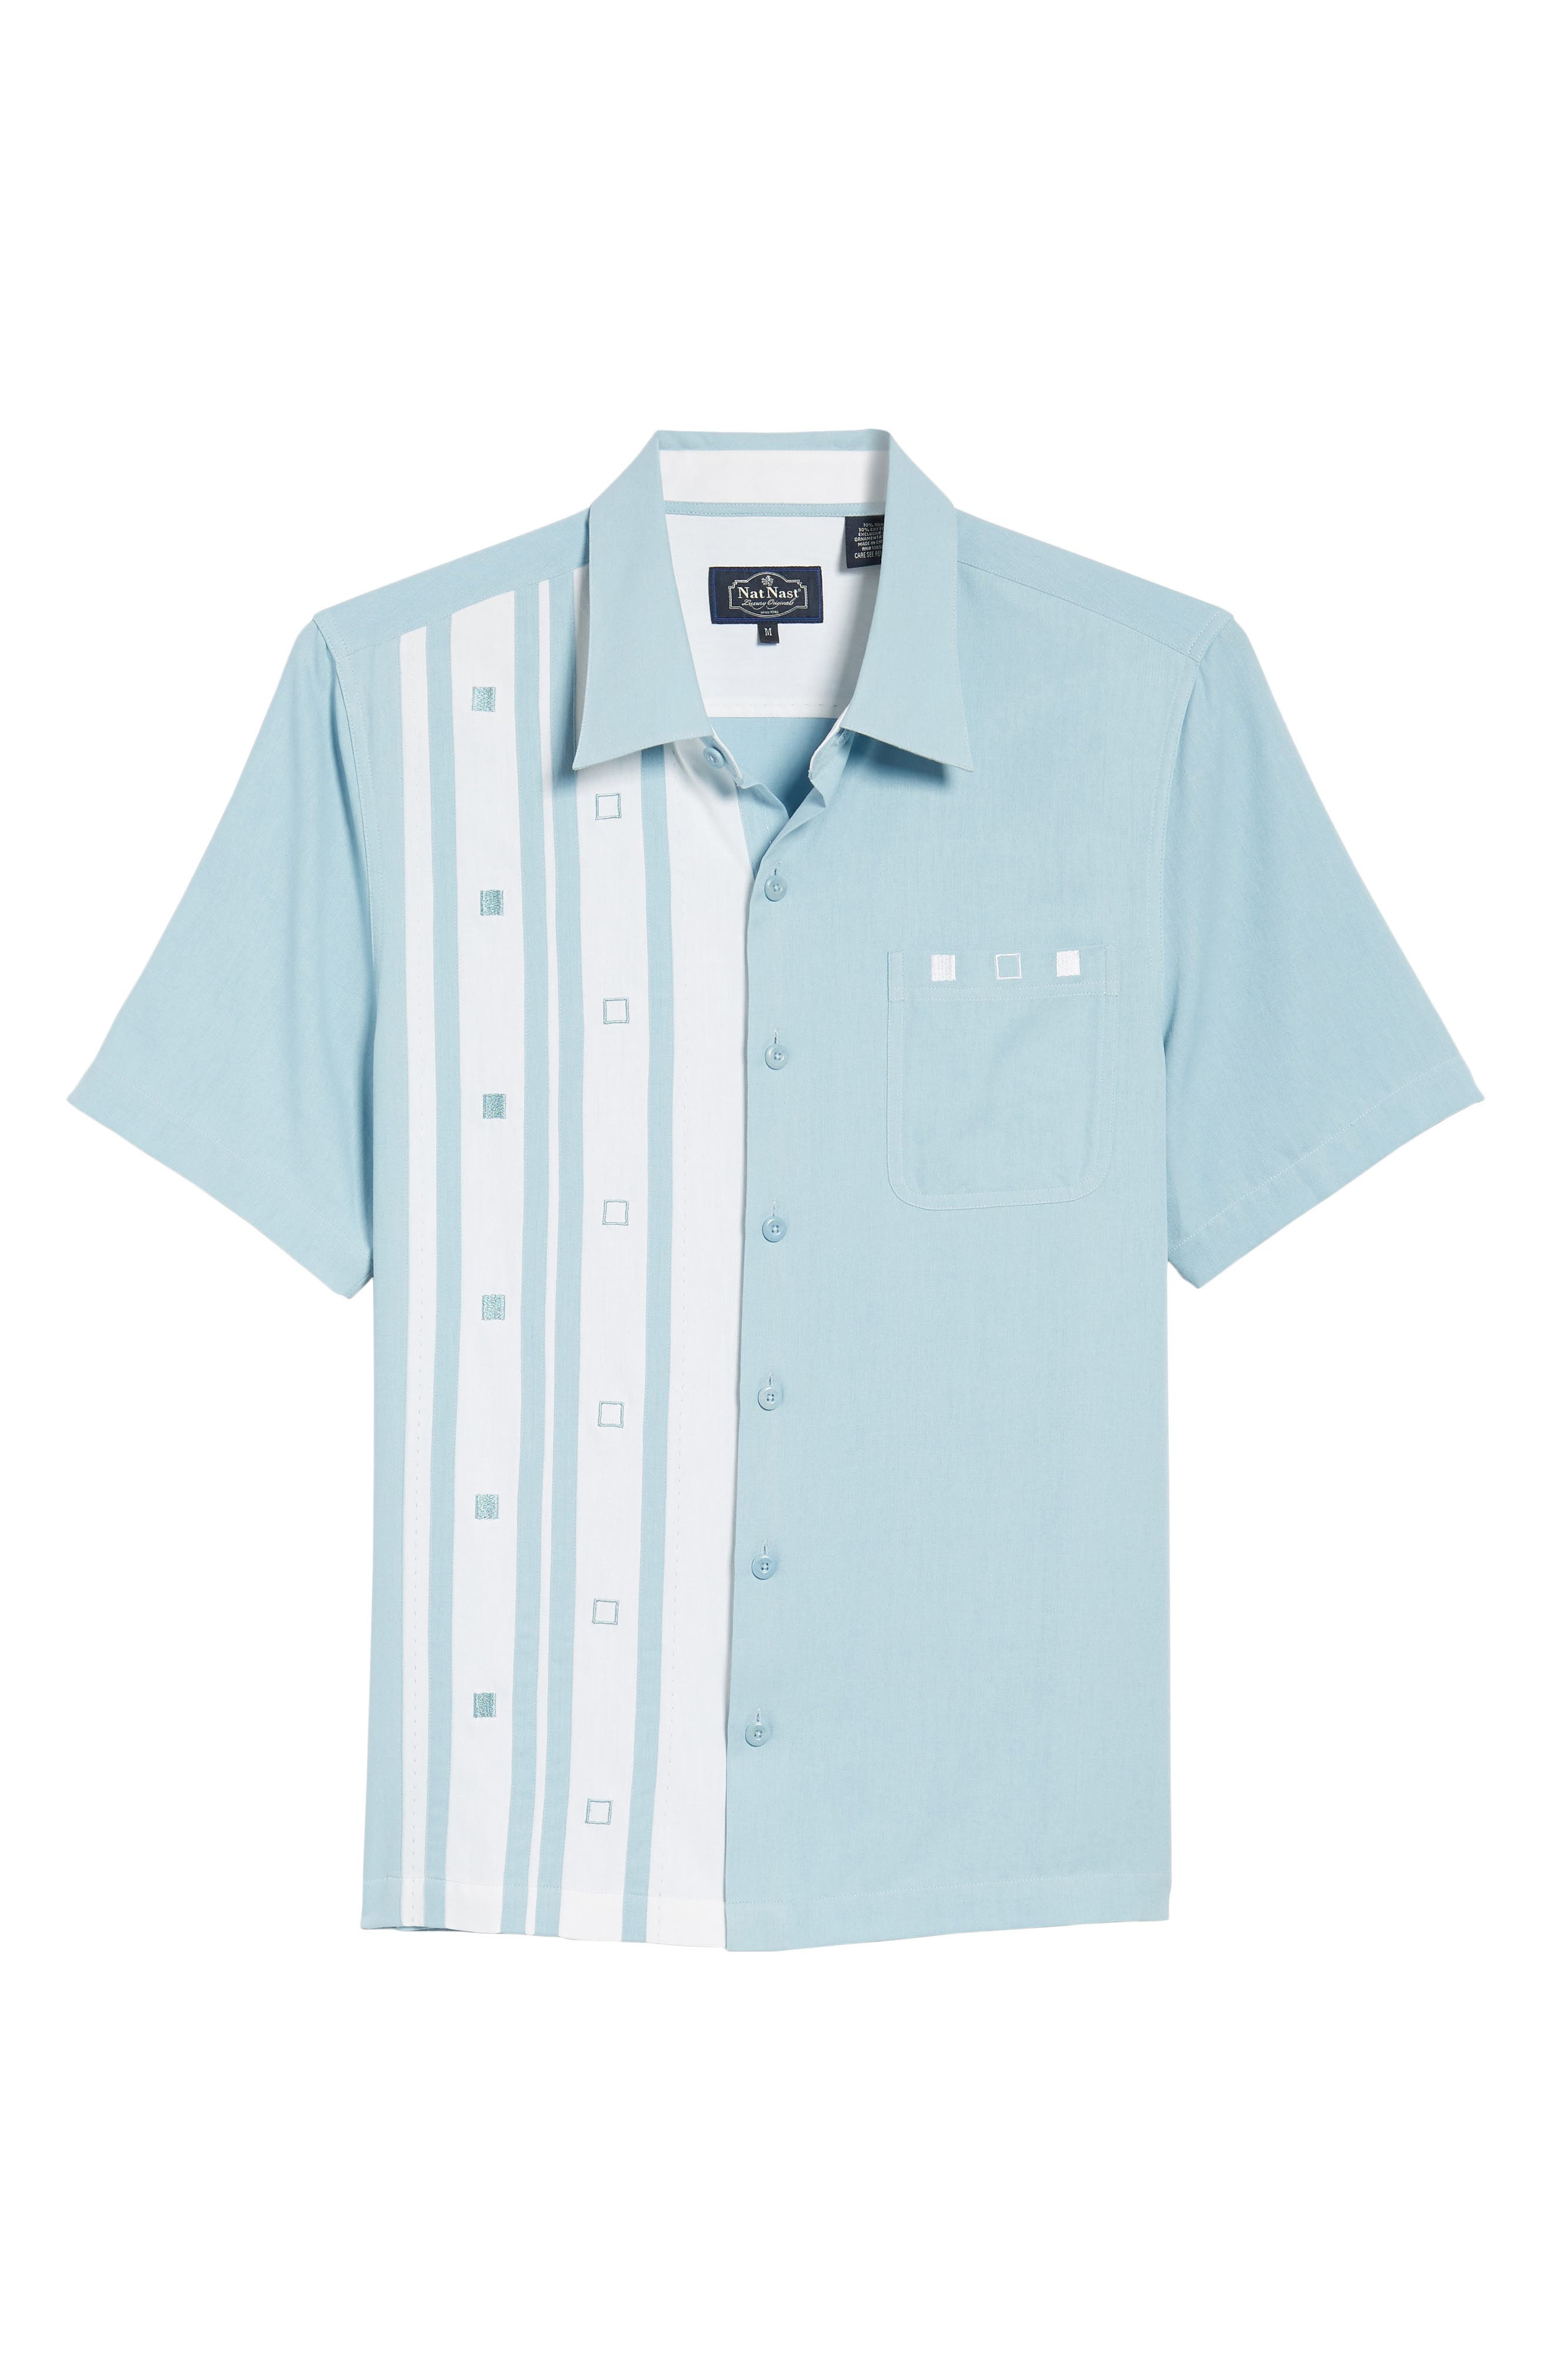 Retromod Camp Shirt,                             Alternate thumbnail 6, color,                             Niagra Blue